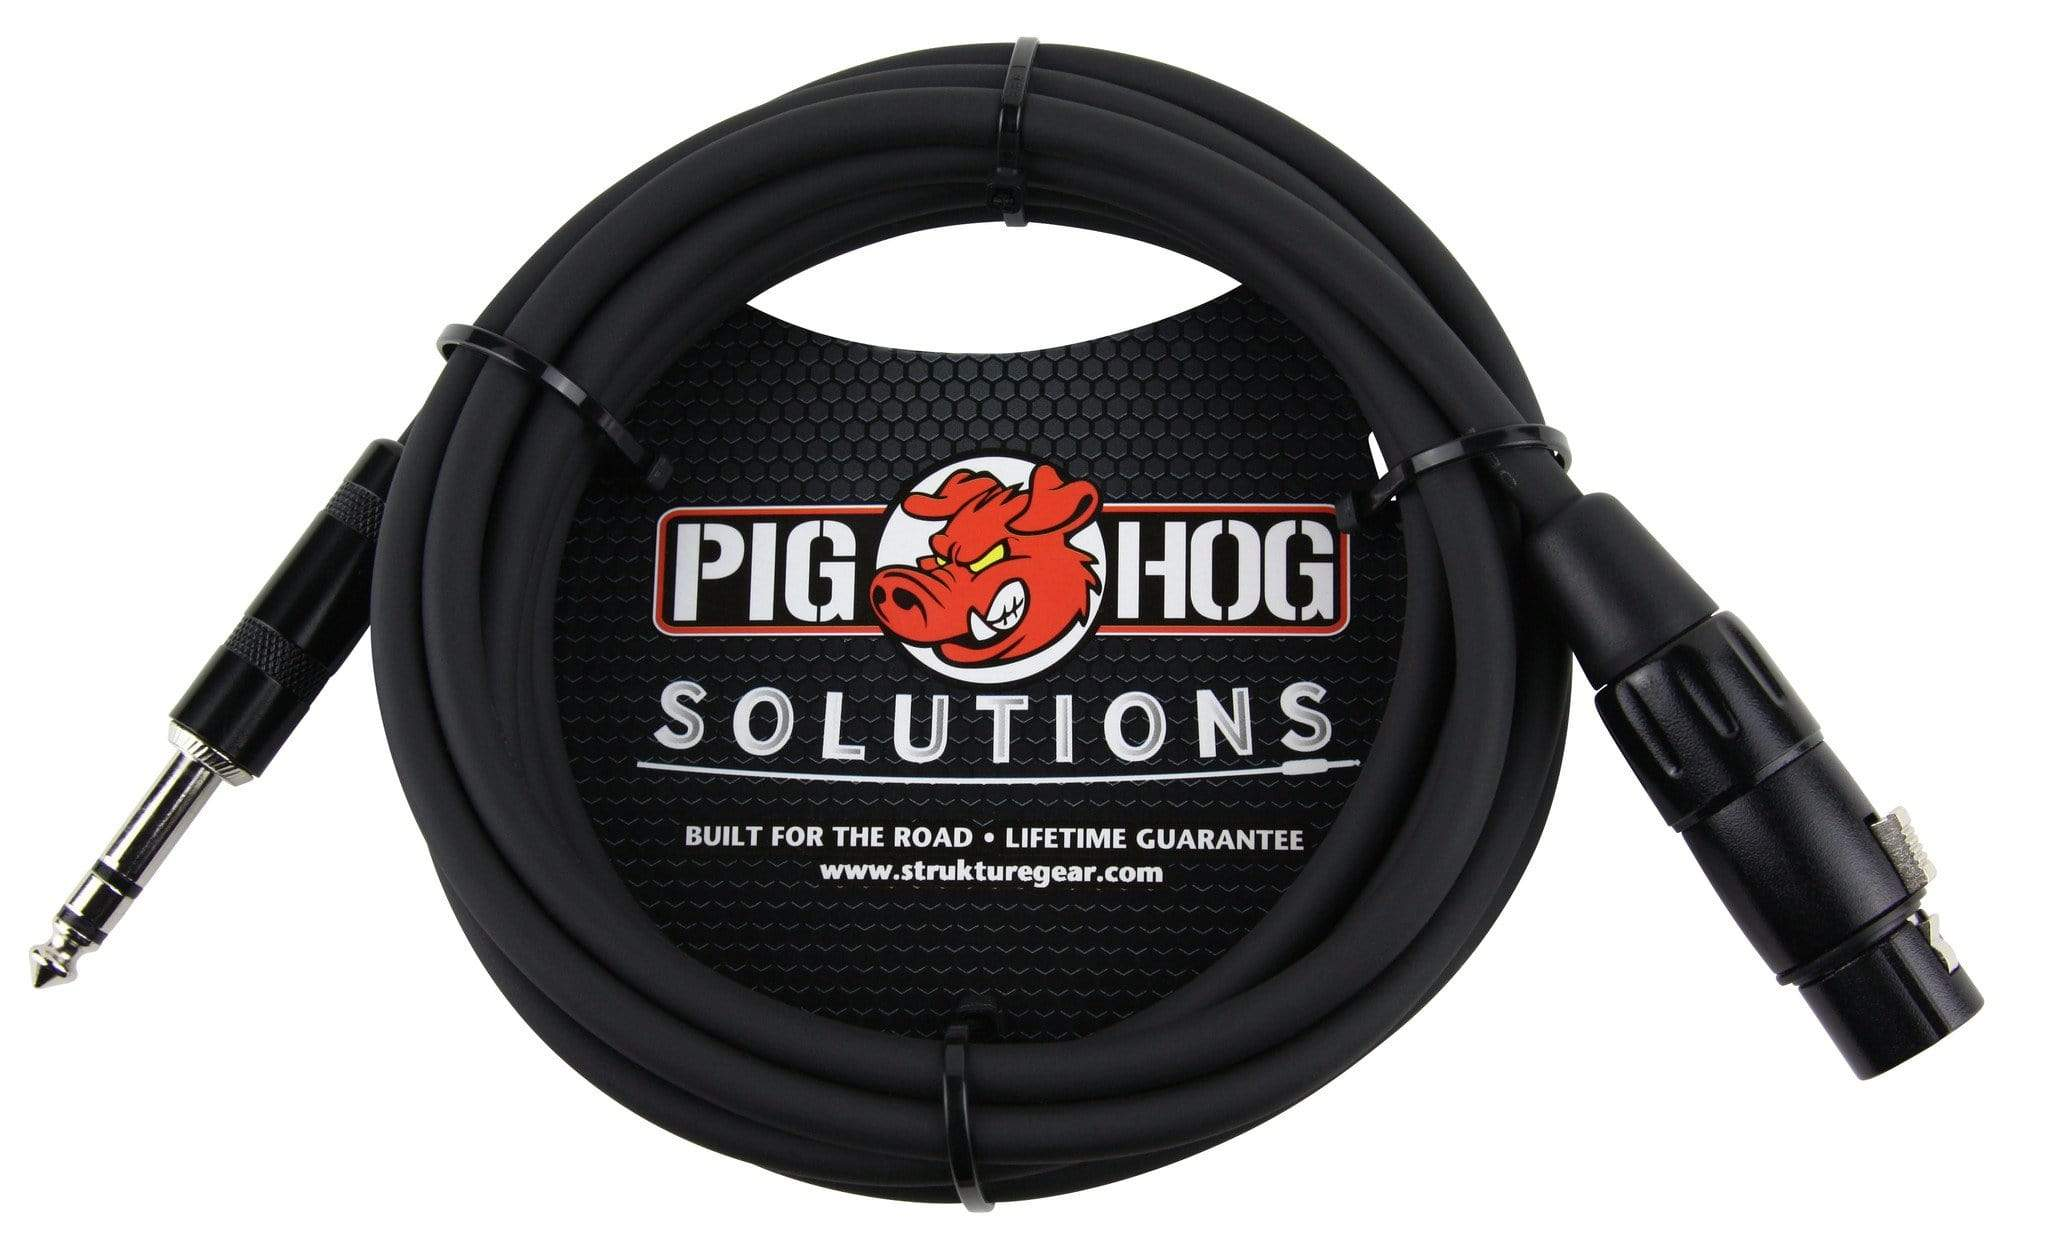 "PIG HOG INTERCONNECT CABLES Pig Hog 10ft 1/4"" TRS Stereo Male to XLR Female Balanced Adapter Cable Cord"